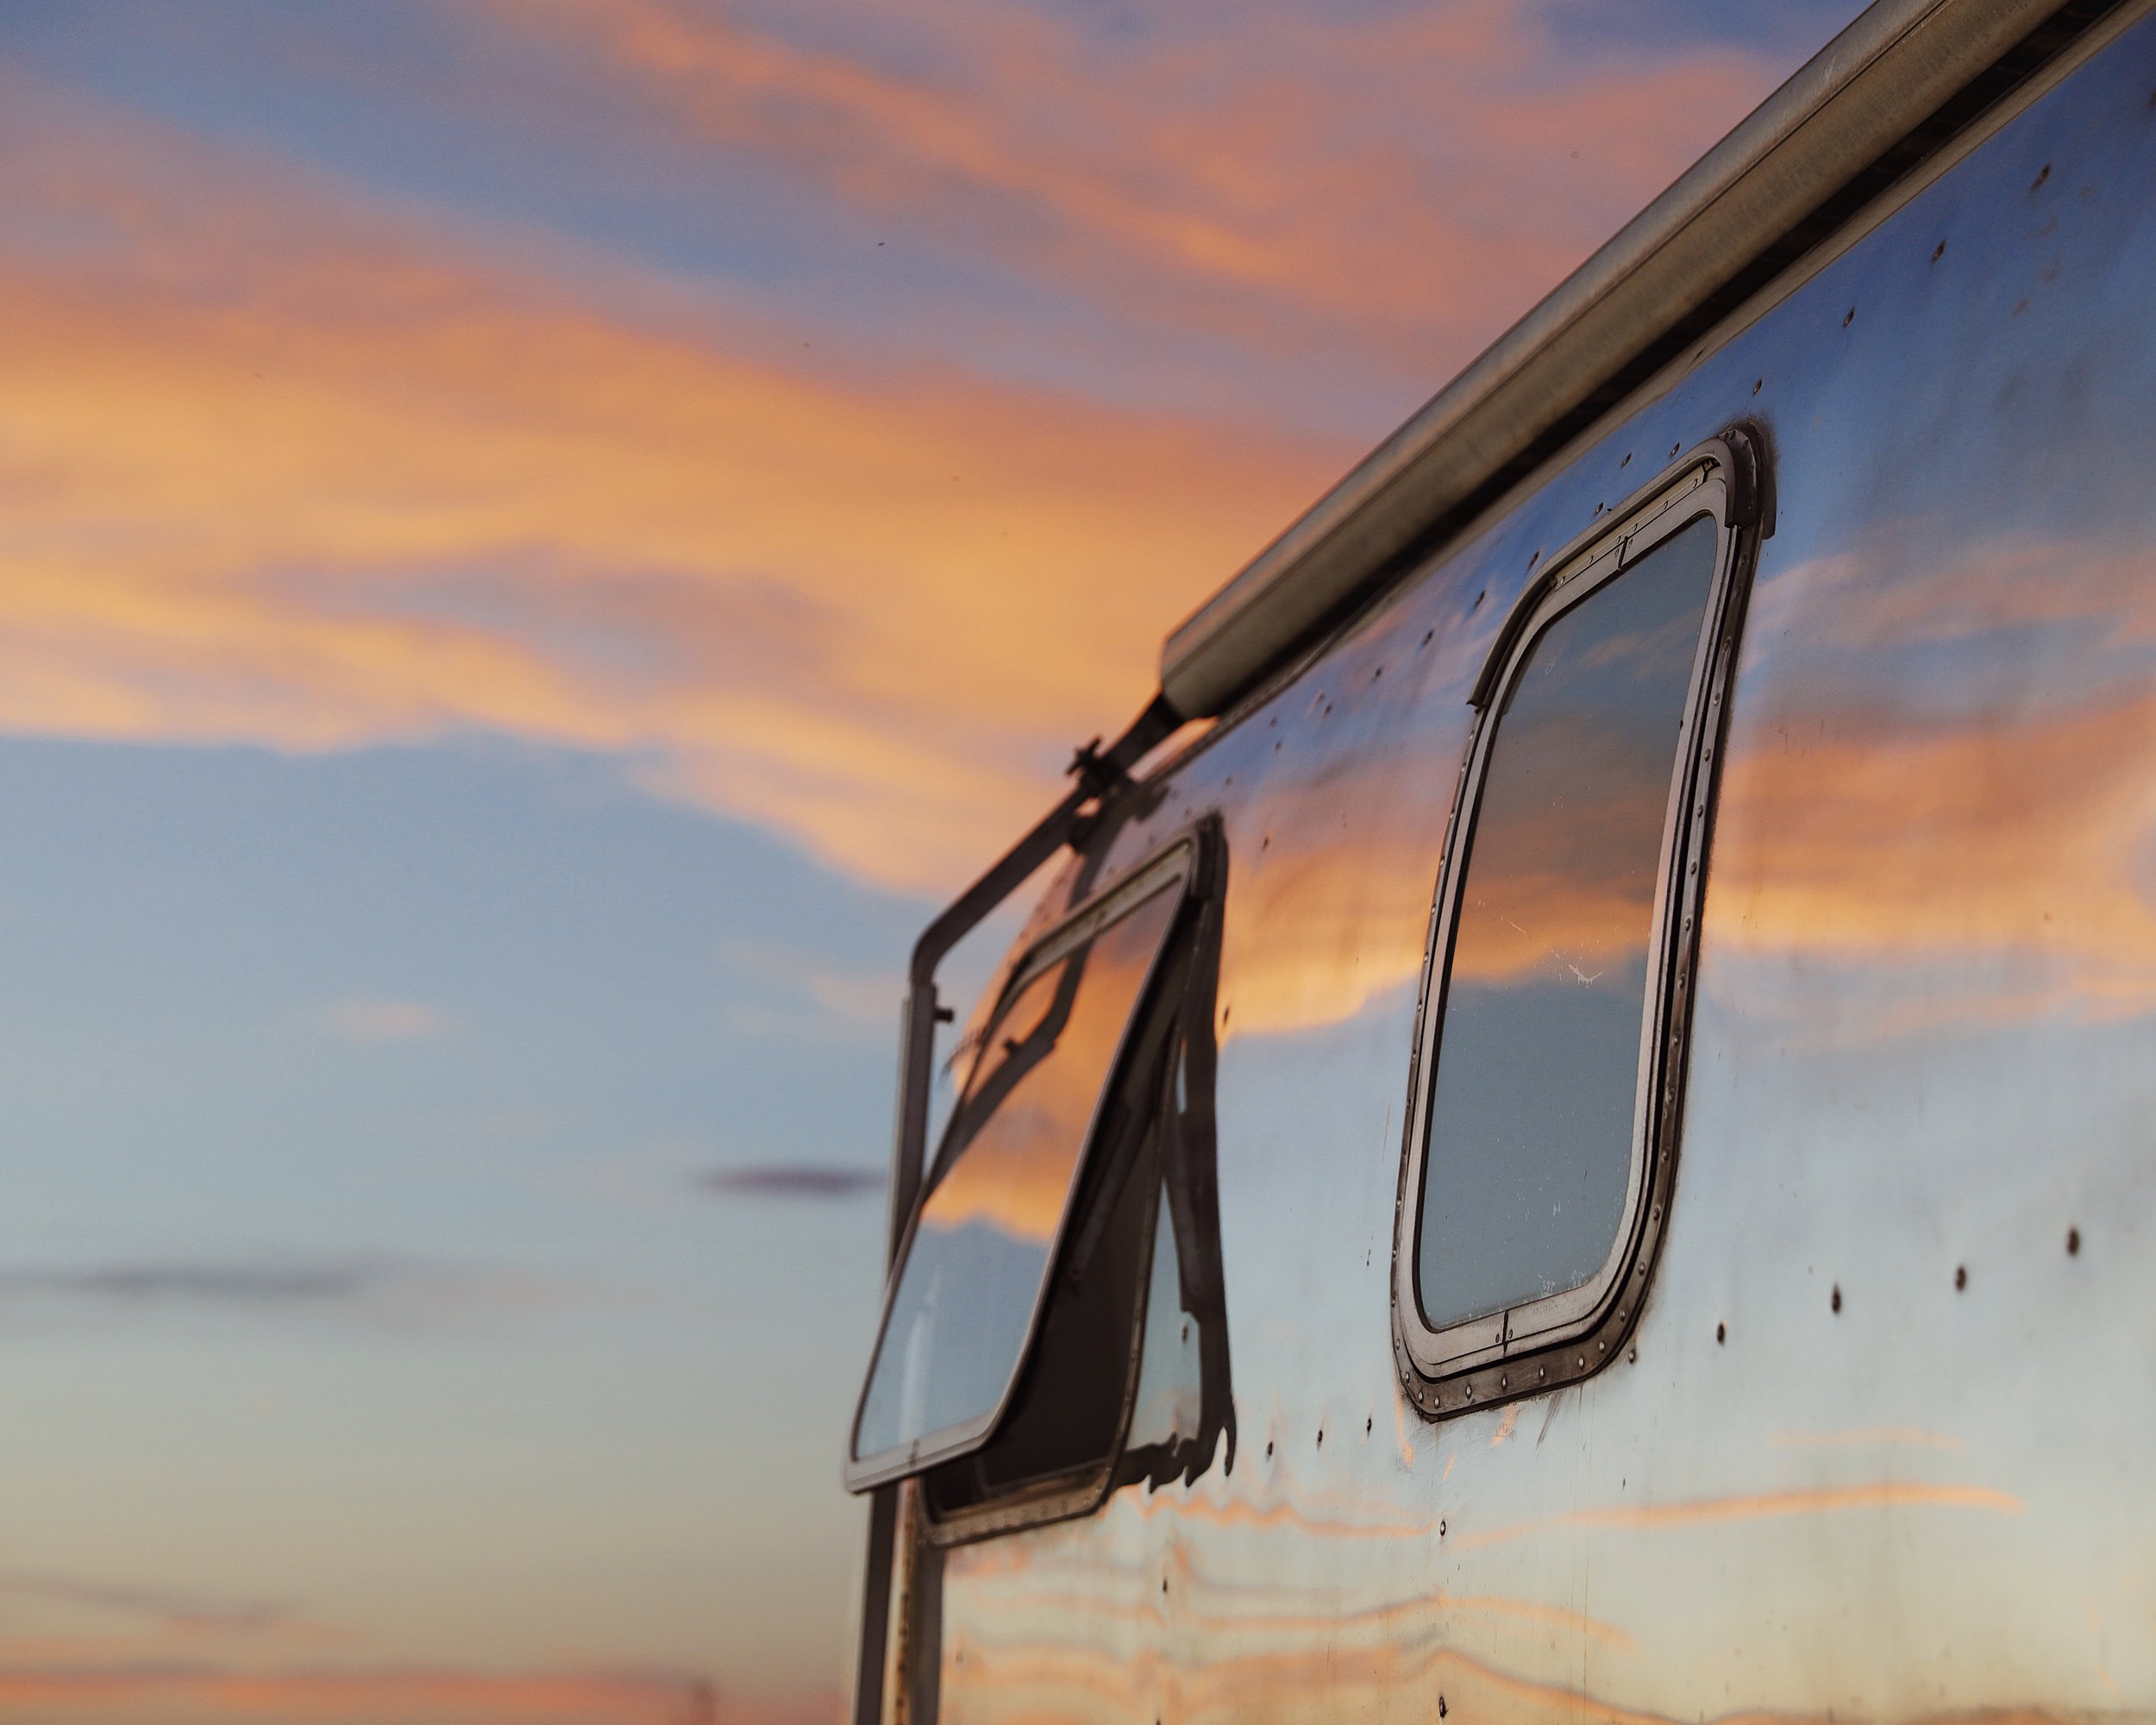 LP_tinkerpodcast_curious_airstream-3.jpg